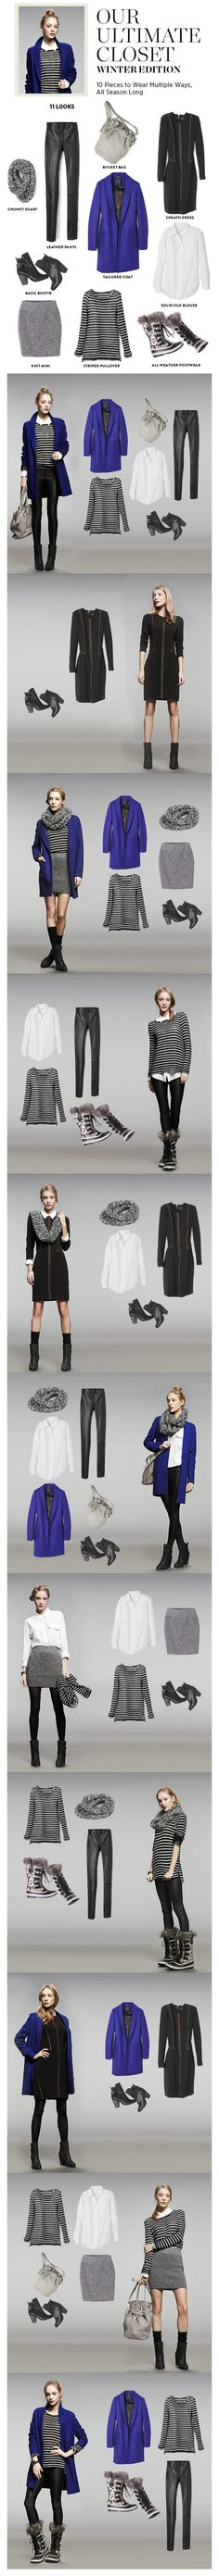 Great inspiration for a winter travel wardrobe.